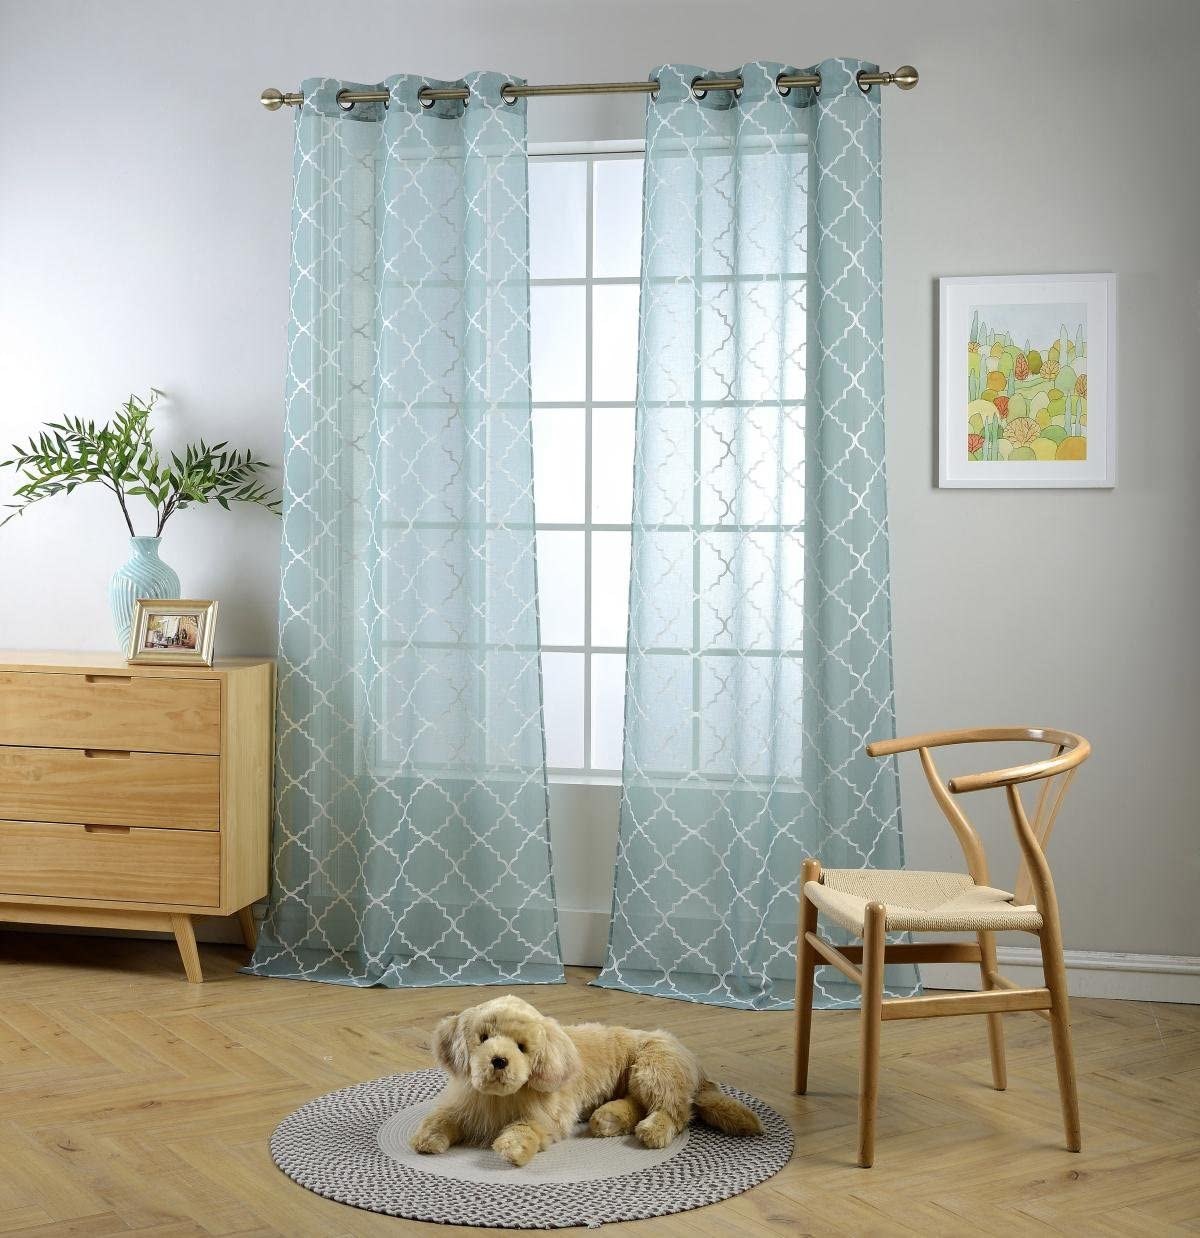 MIUCO Sheer Curtains Embroidered Trellis Design Grommet Curtains 63 Inches Long for Living Room 2 Panels (2 x 37 Wide x 63